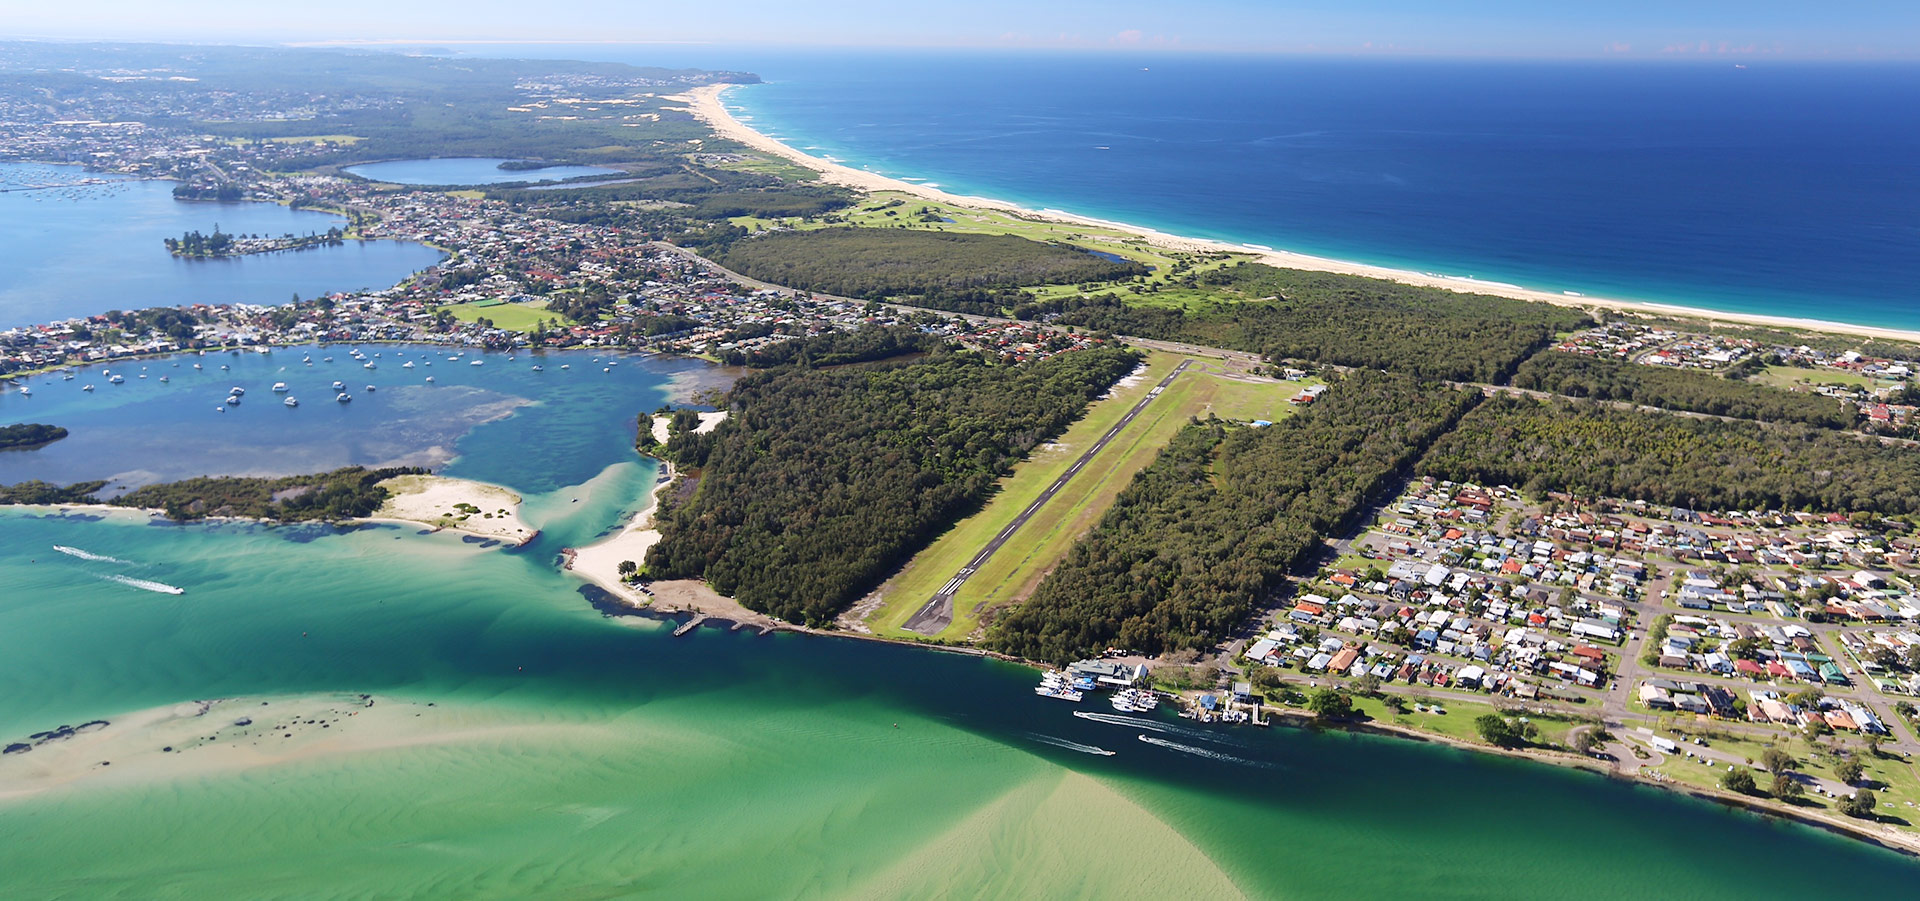 helicopter flights hunter valley with Ylmq on Radar Technology Measures Clearance Heights Between Road And Power Lines moreover History additionally Sydney Incentive And Rewards Helicopters also sydneyhelicoptercharter as well Sydney By Helicopter.